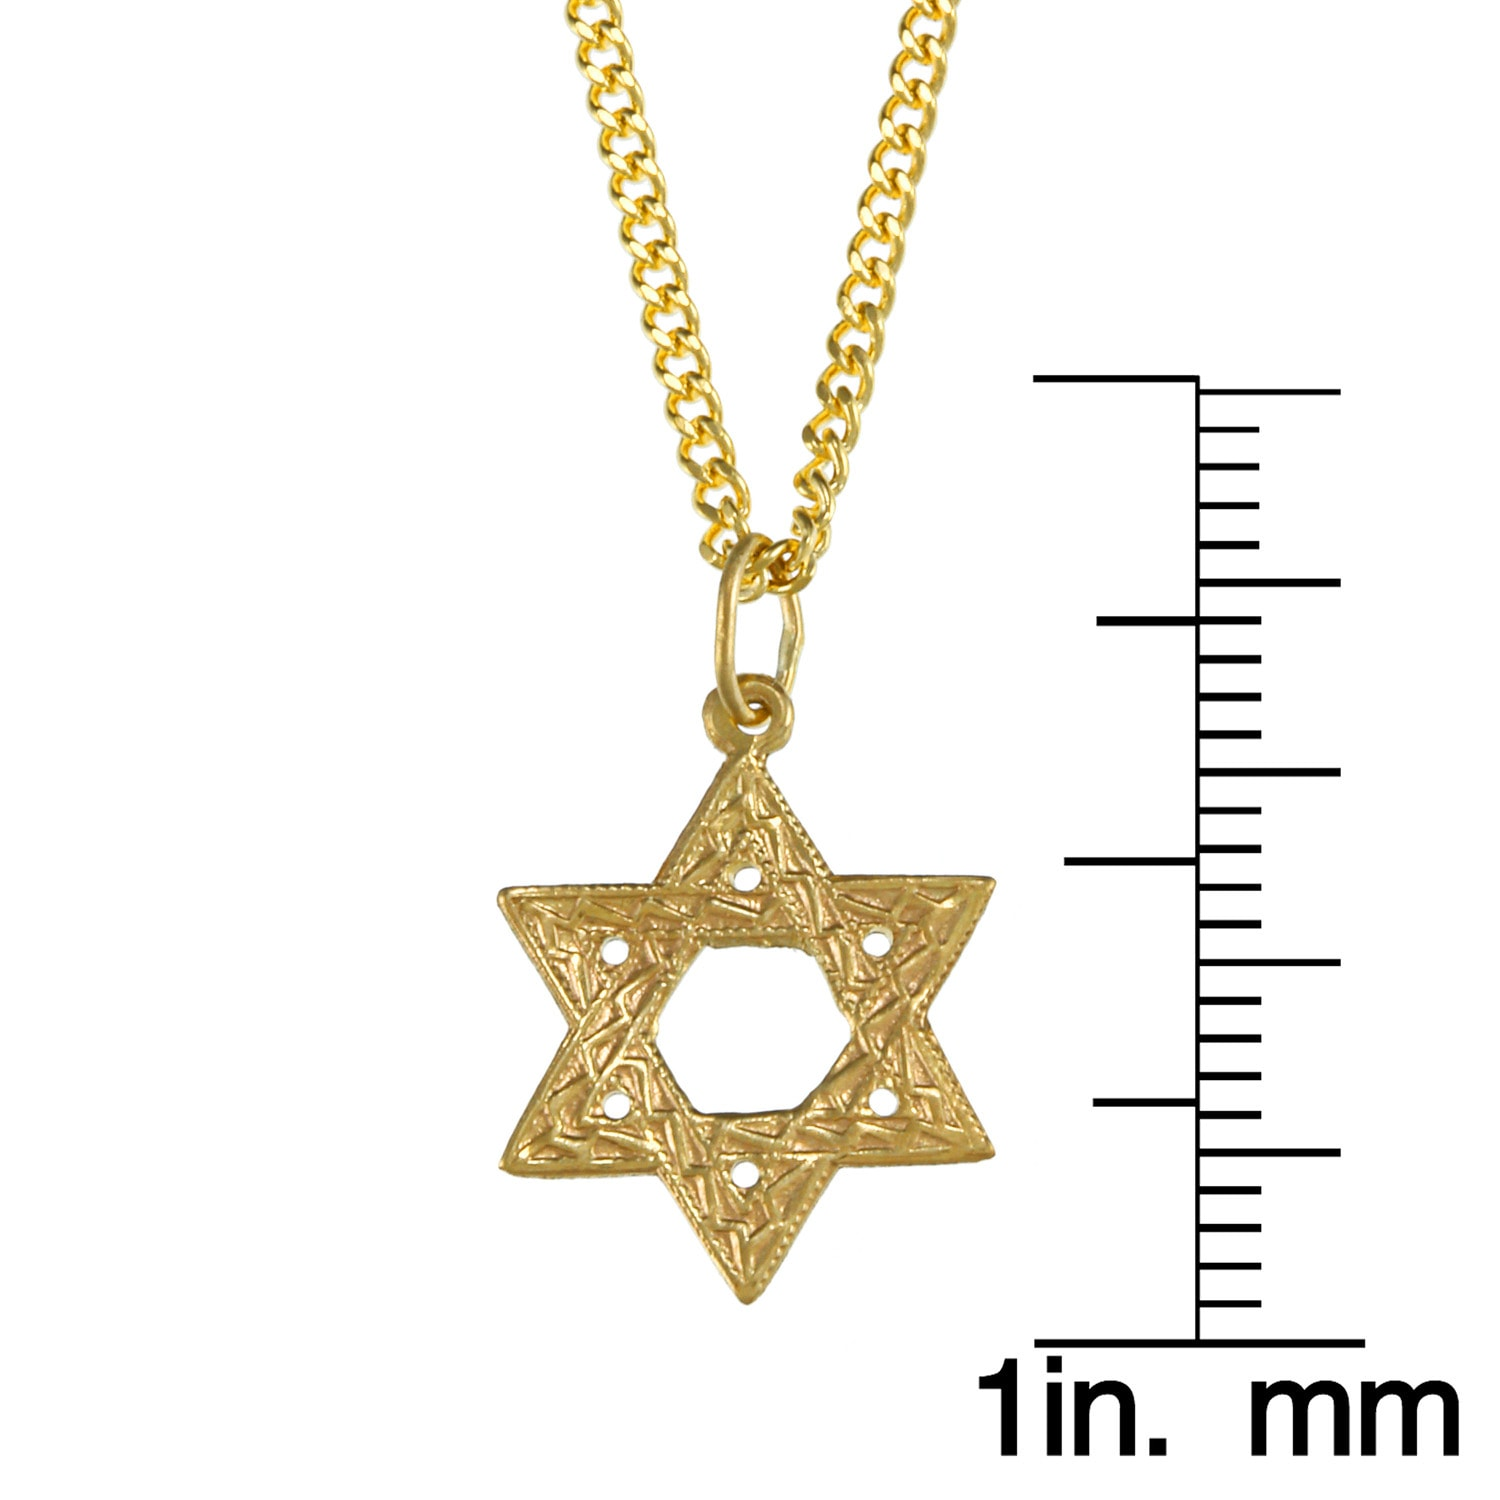 vi charms shop coin roberto gold designer pendants modified necklace cable chain necklaces